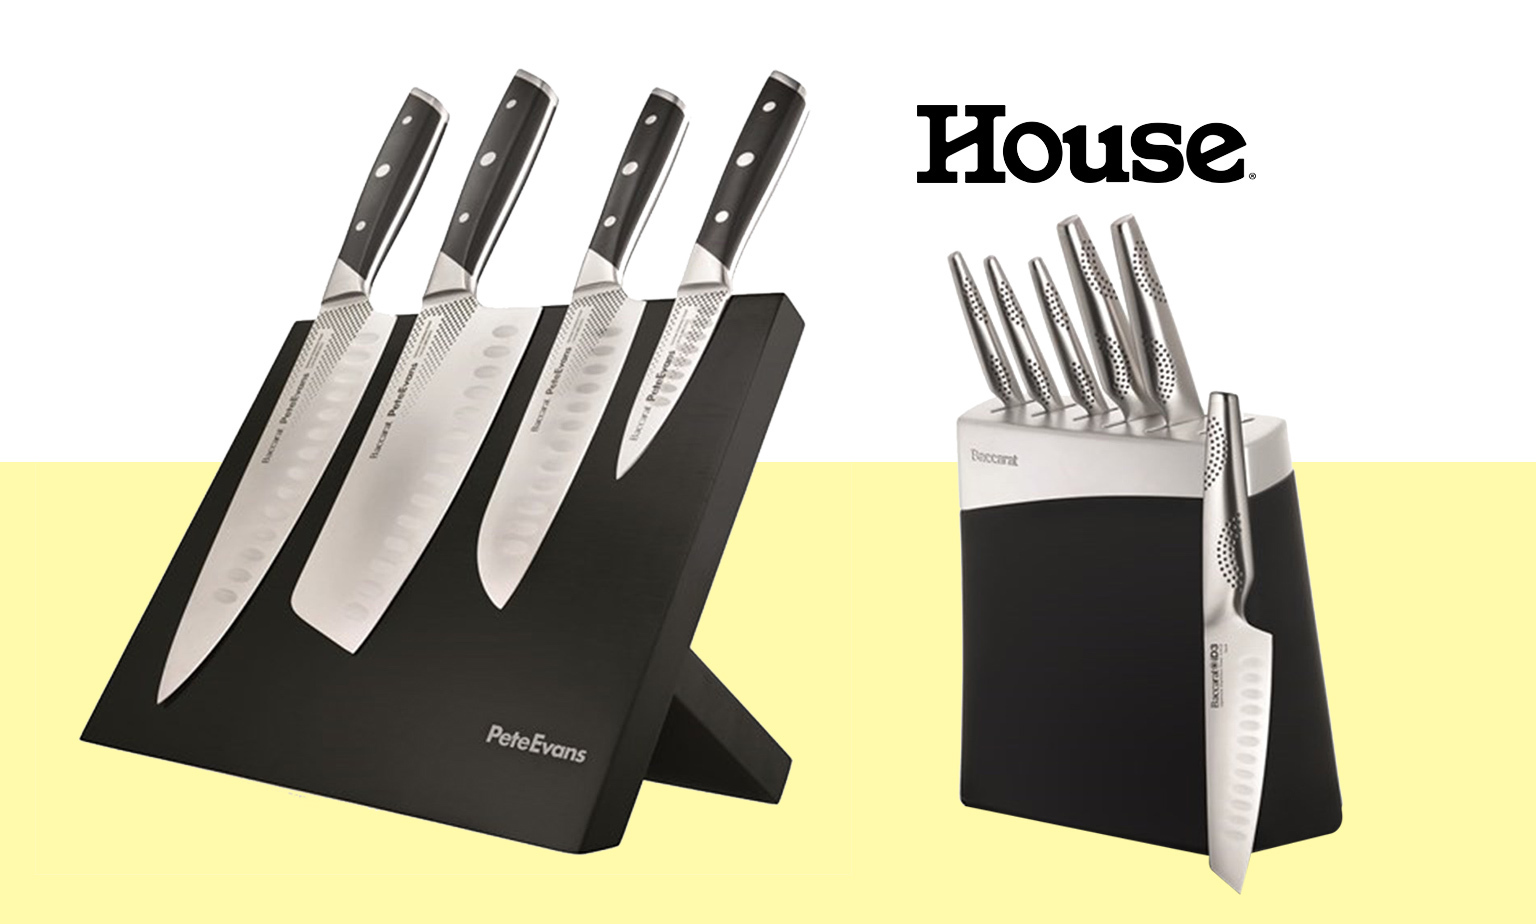 Up to 75% off* Knife Blocks